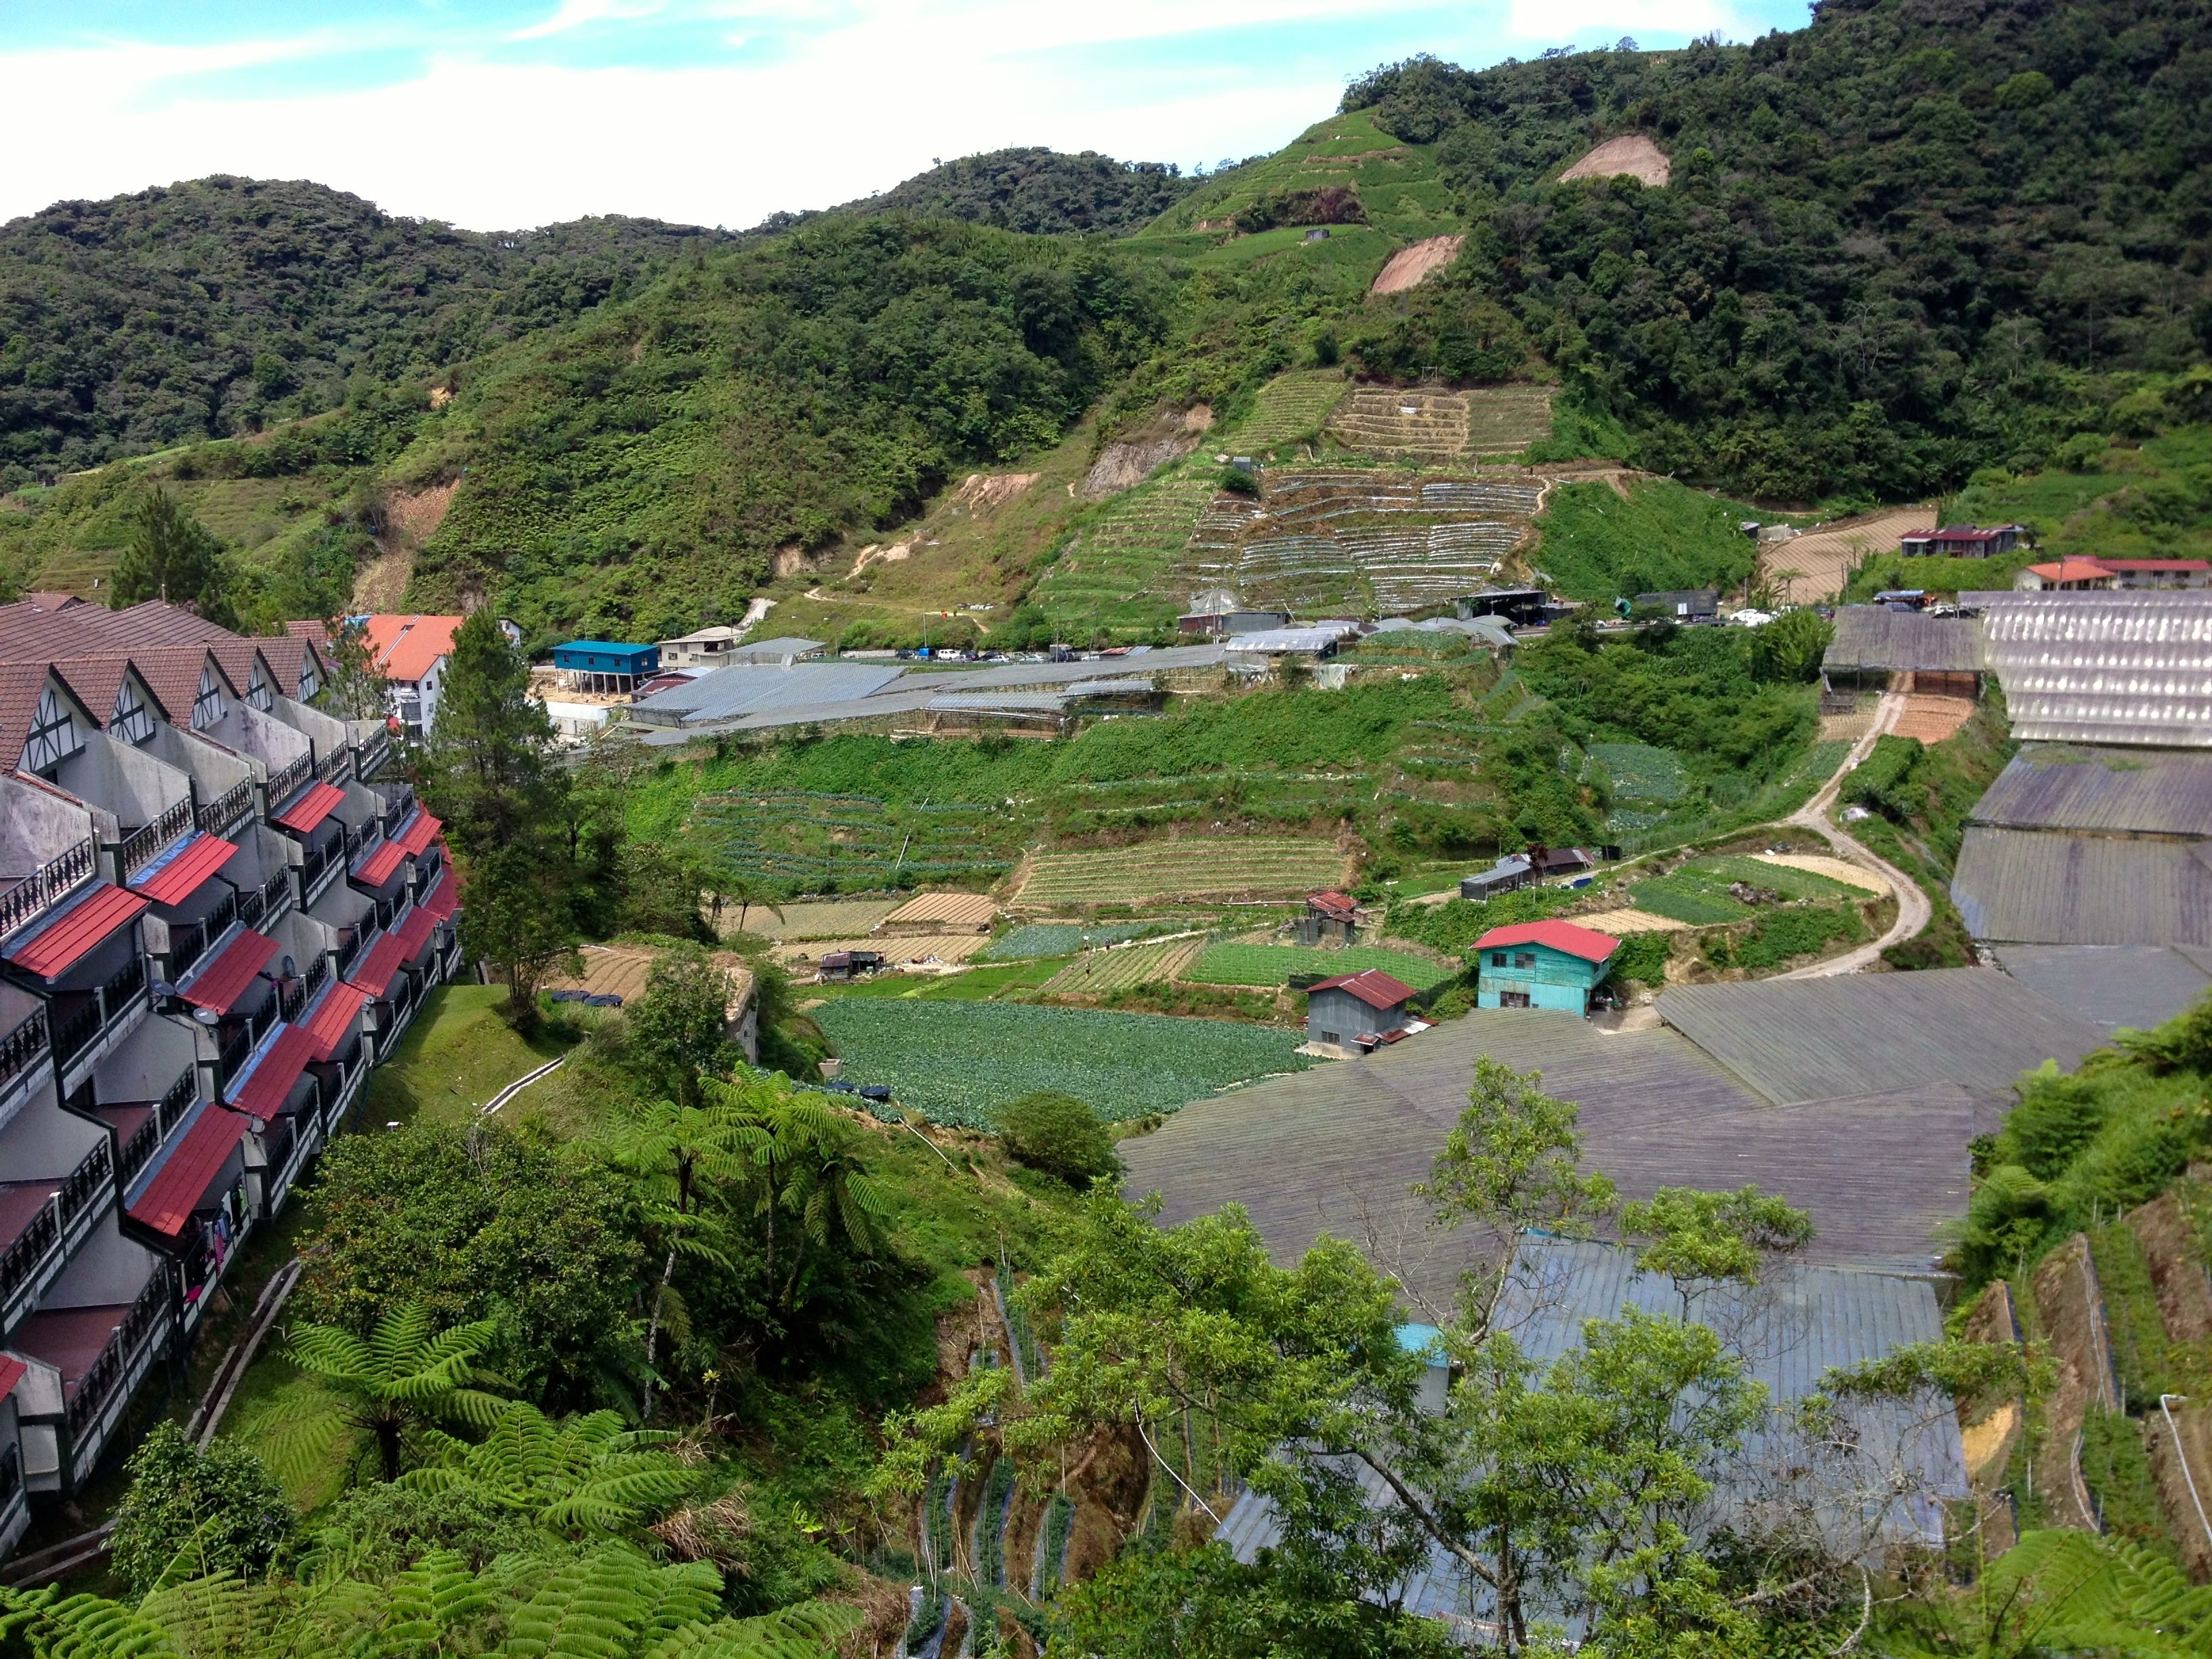 Cameron Highlands Vegetable Plots